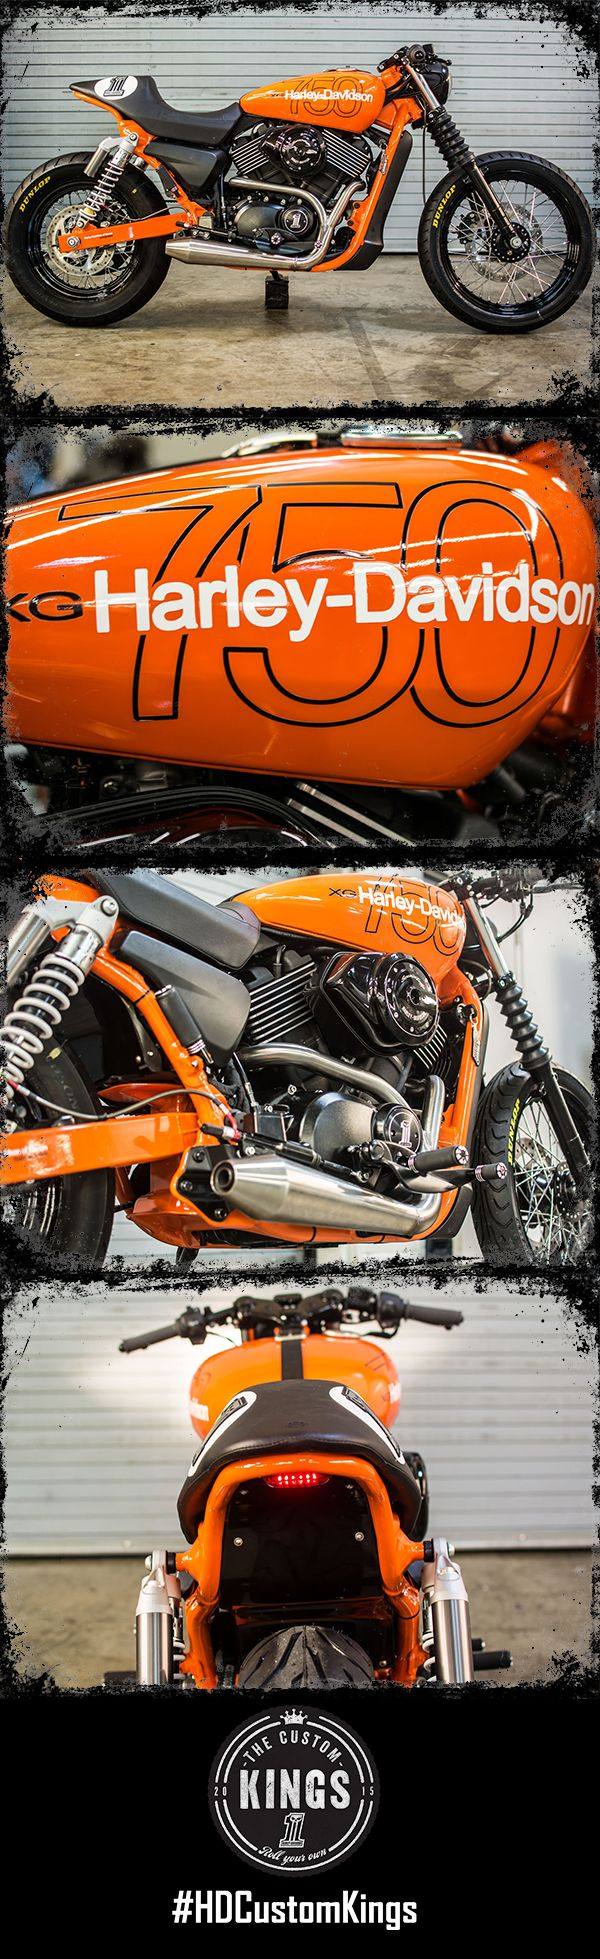 Harley-Davidson of Macon throws it back for their build. The inspiration on this #HDStreet comes from a '78 Harley-Davidson MX 250. #RollYourOwn | Harley-Davidson #HDCustomKings